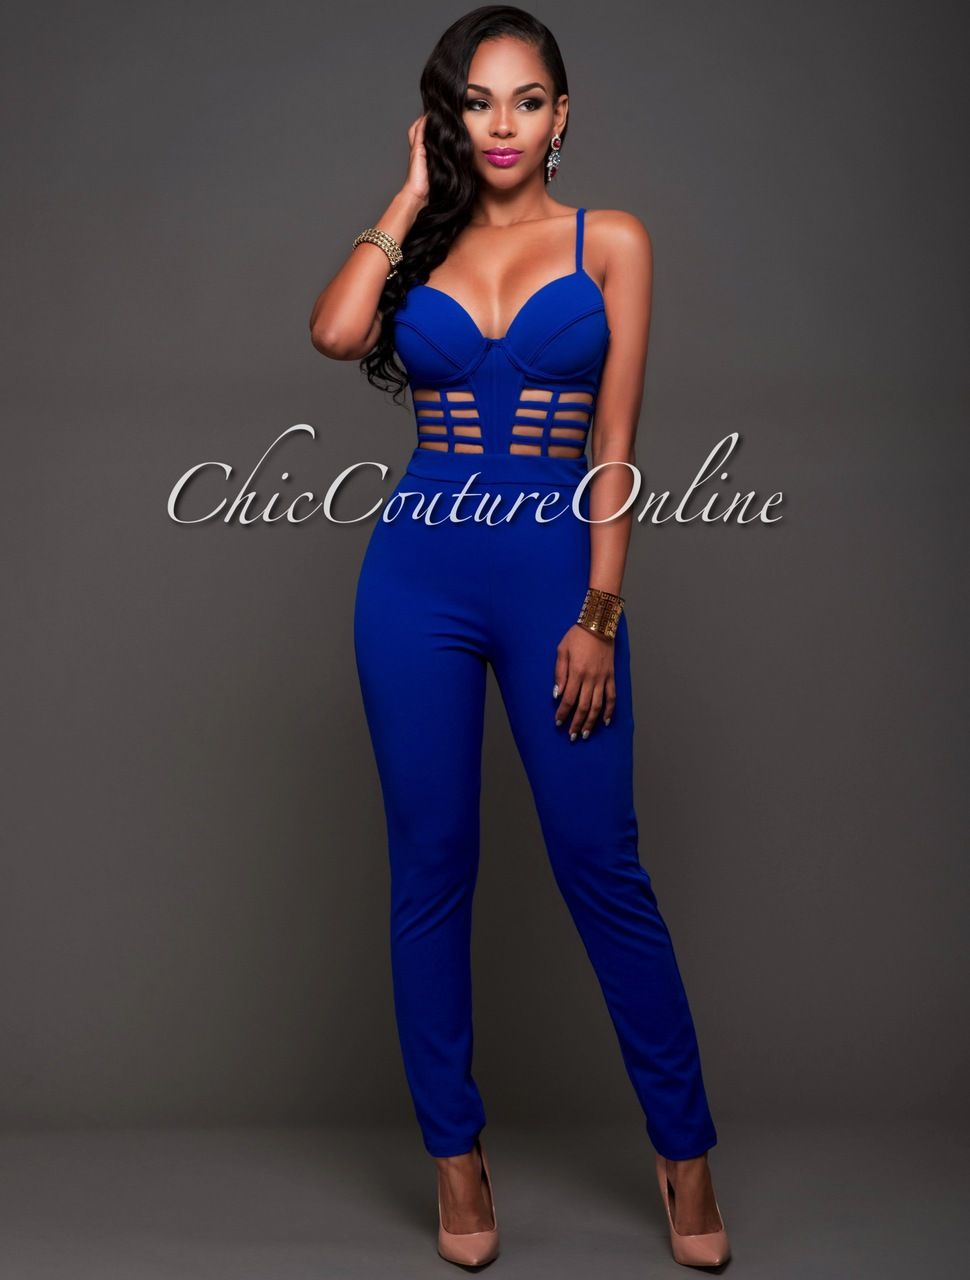 6c1eea985397 Pin by Chic Couture Online on Clothing ~ Chic Couture Online ...